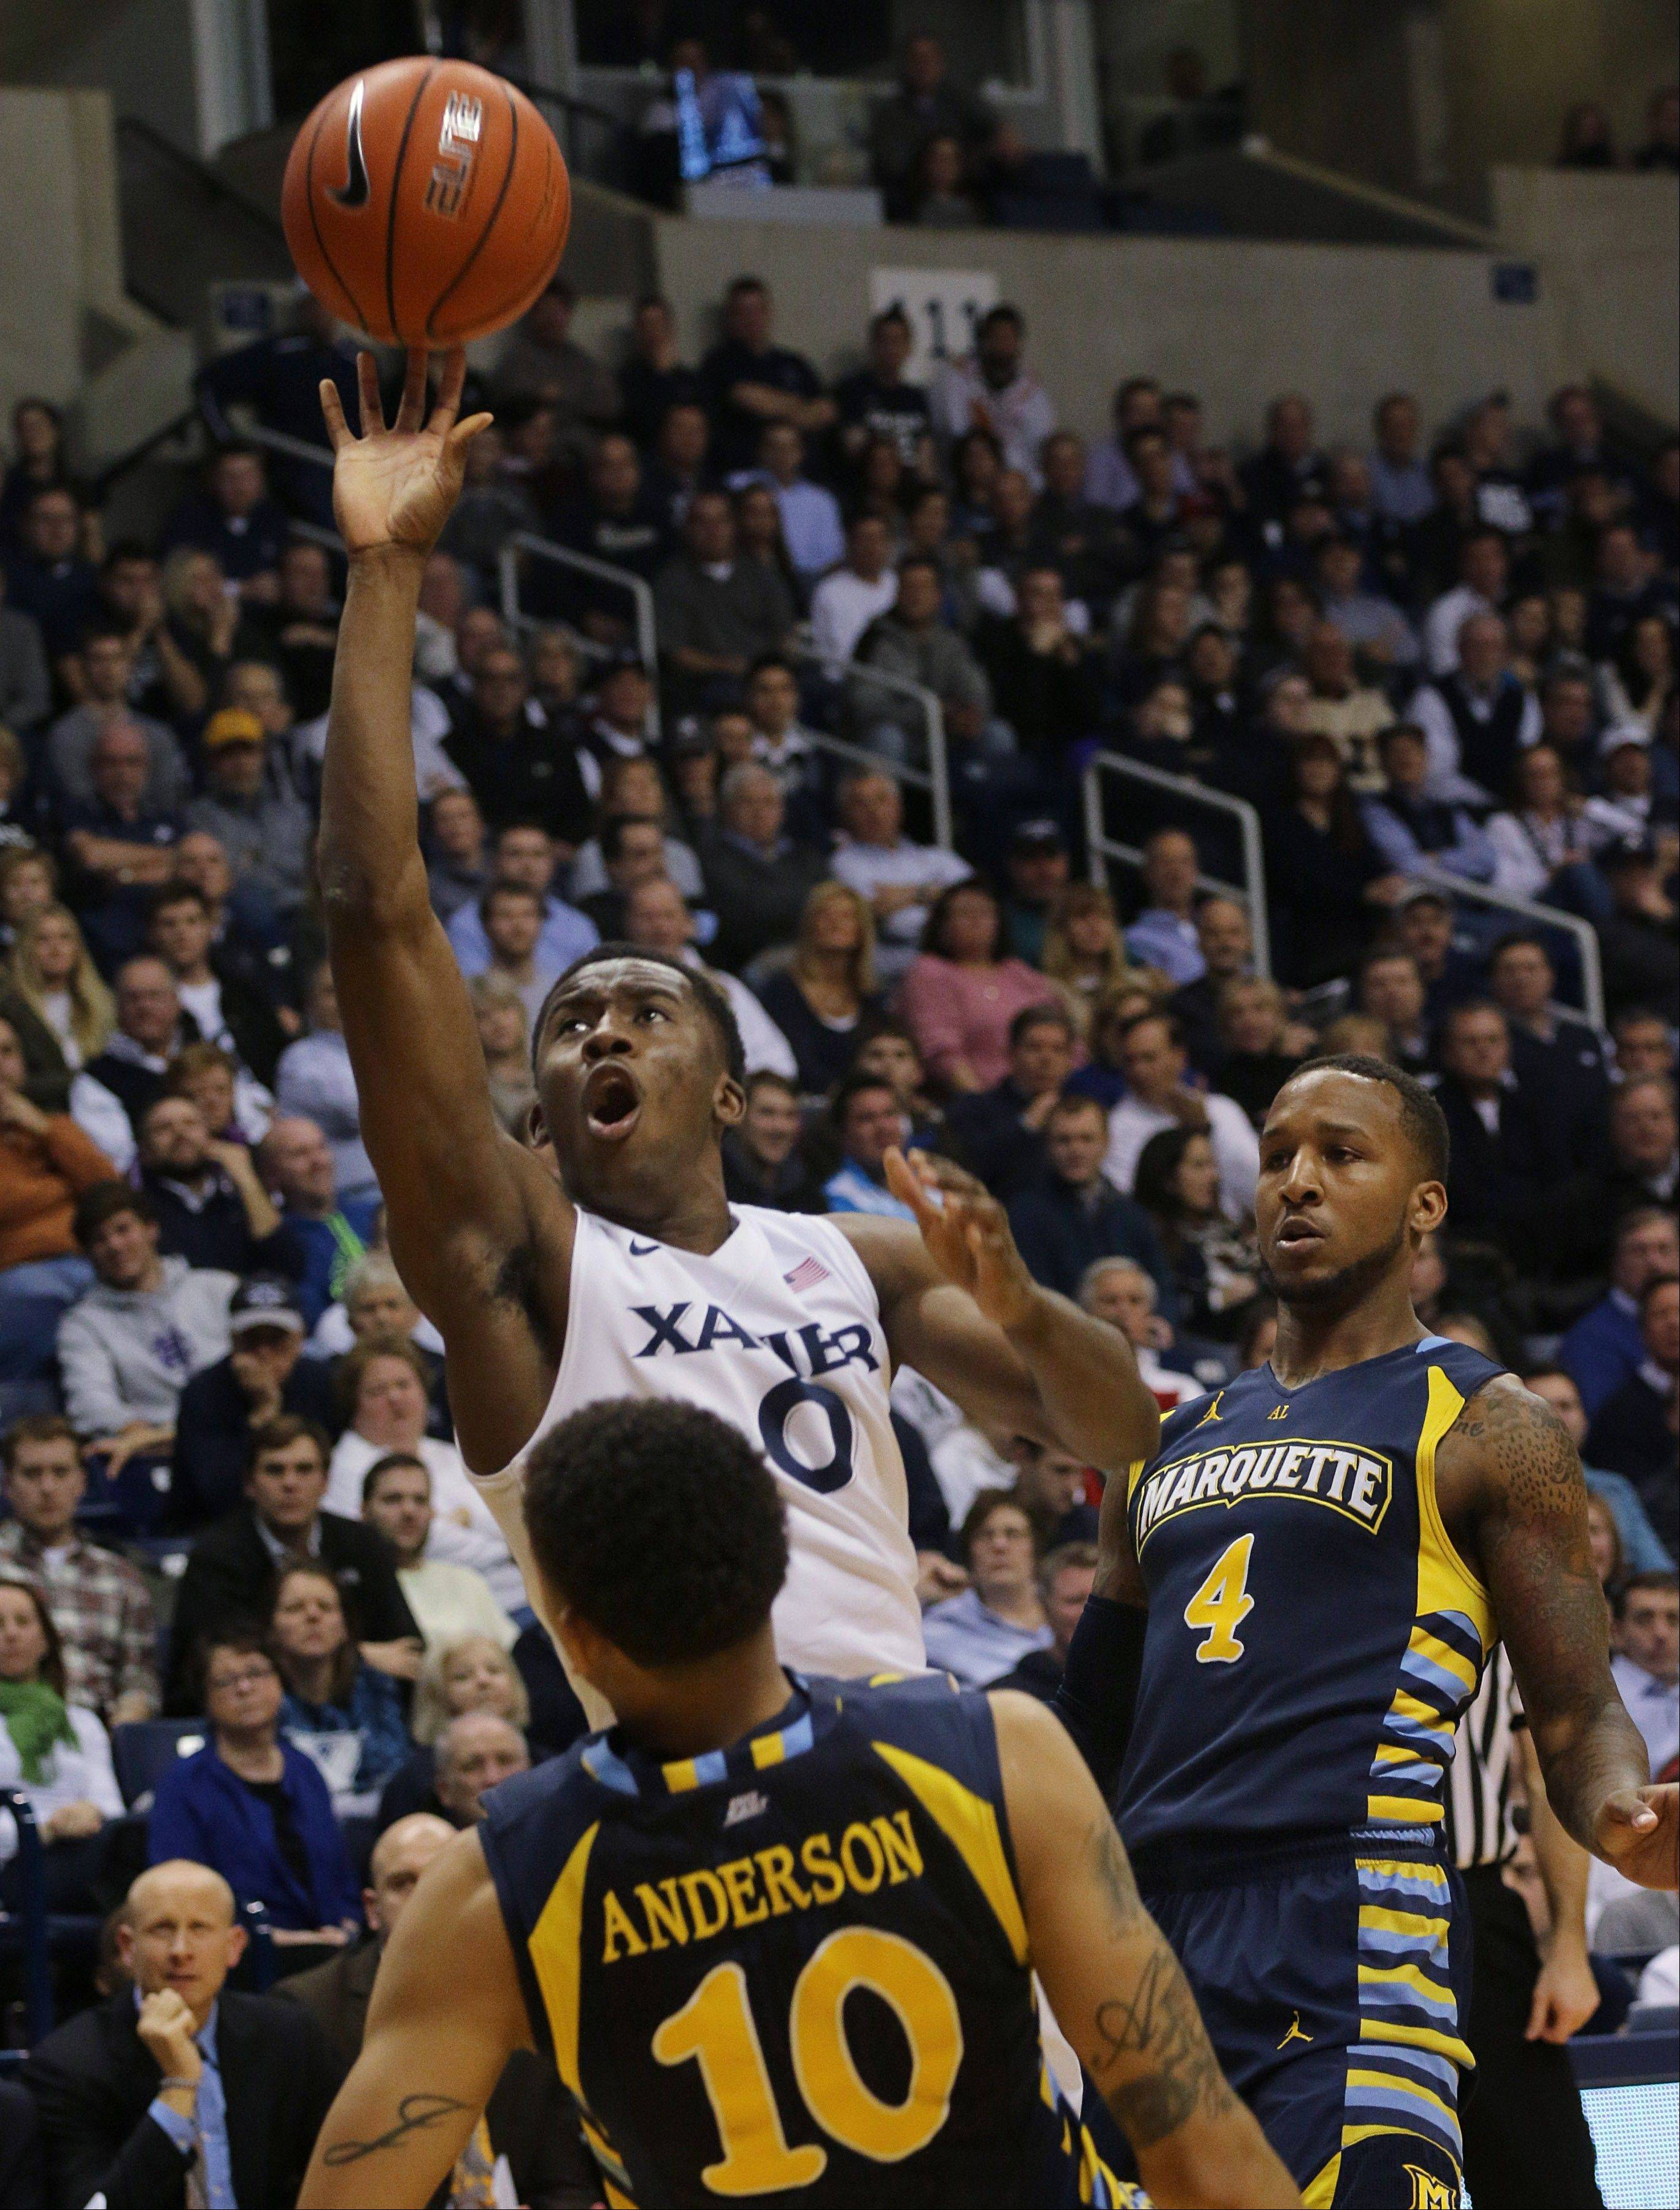 Xavier's Semaj Christon shoots past Marquette's Juan Anderson and Todd Mayo in the second half of Thursday's game in Cincinnati.